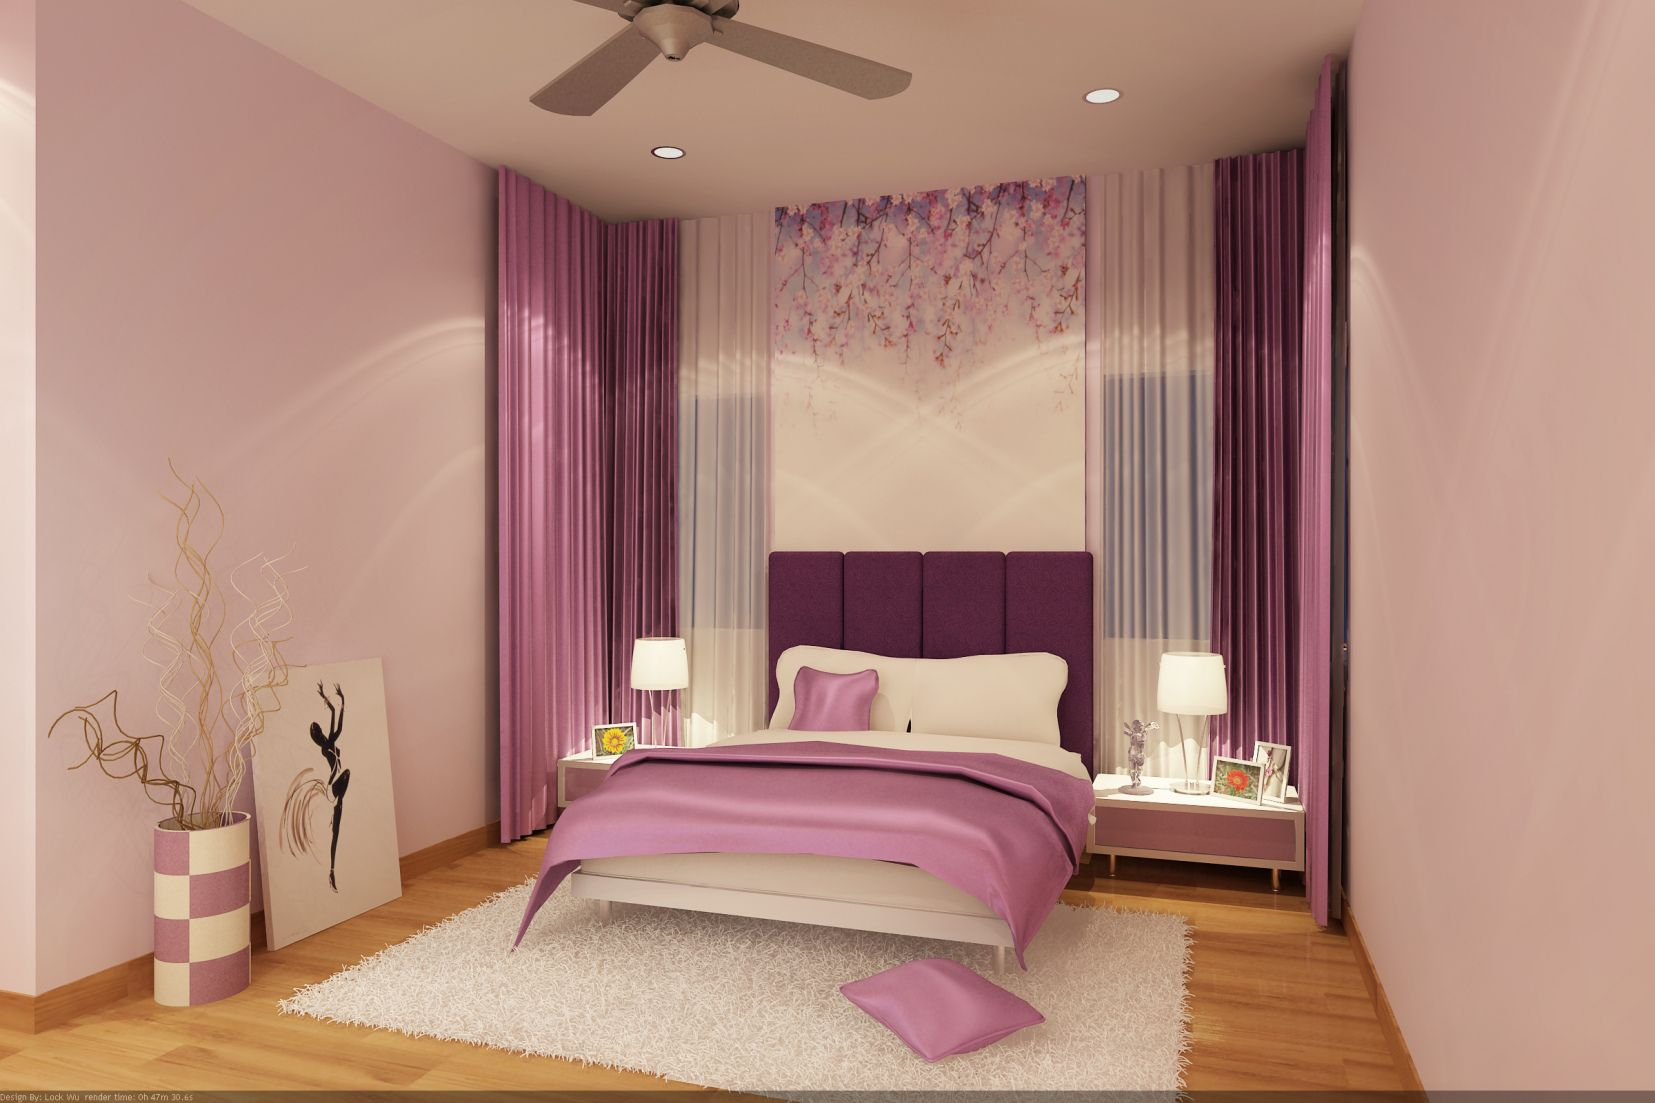 Pin By Hendro Birowo On Modern Design Low Budget In 2019 Bedroom